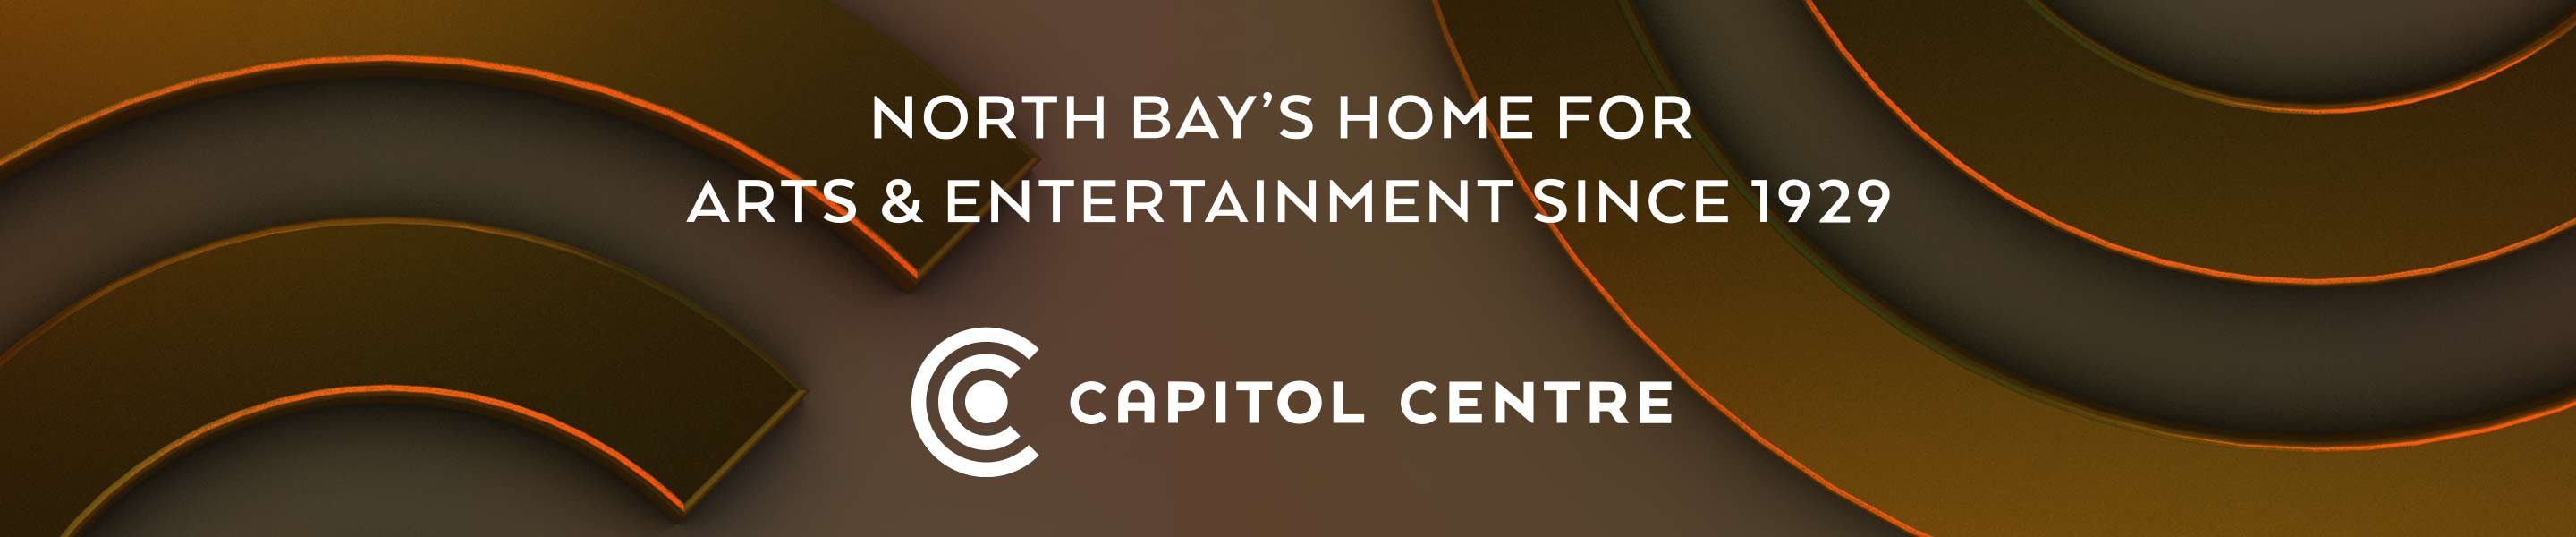 North Bay's home for arts and entertainment since 1929